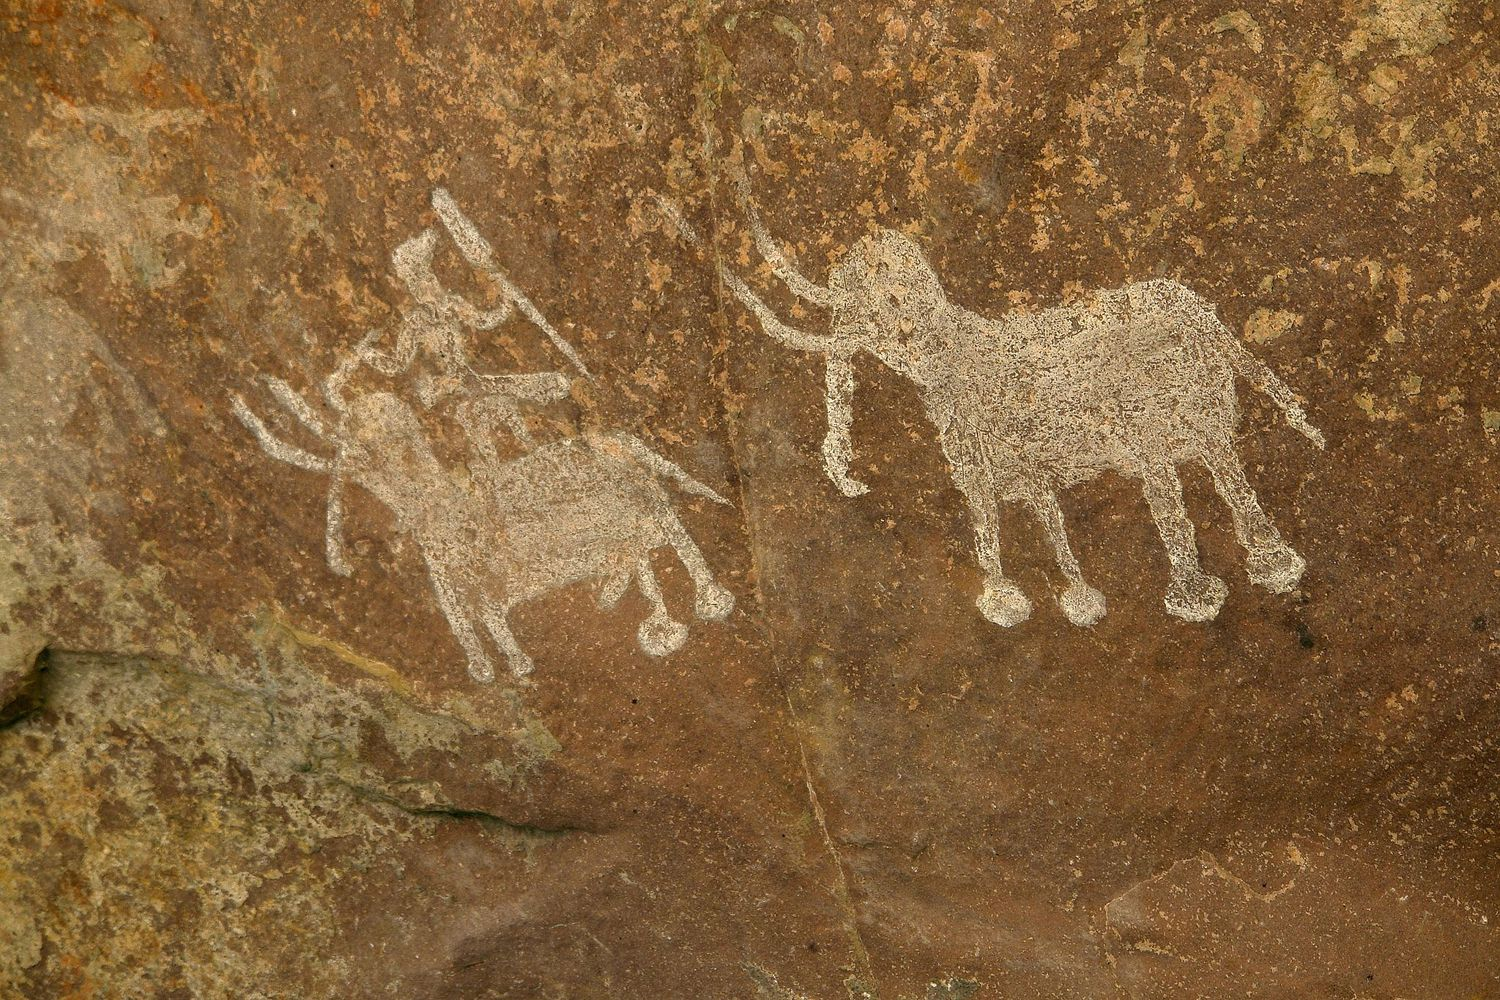 innovations of the upper paleolithic As you should know from your readings, the upper paleolithic was a period of incredible diversity and technological innovation lithic technology also underwent an important change during this time.